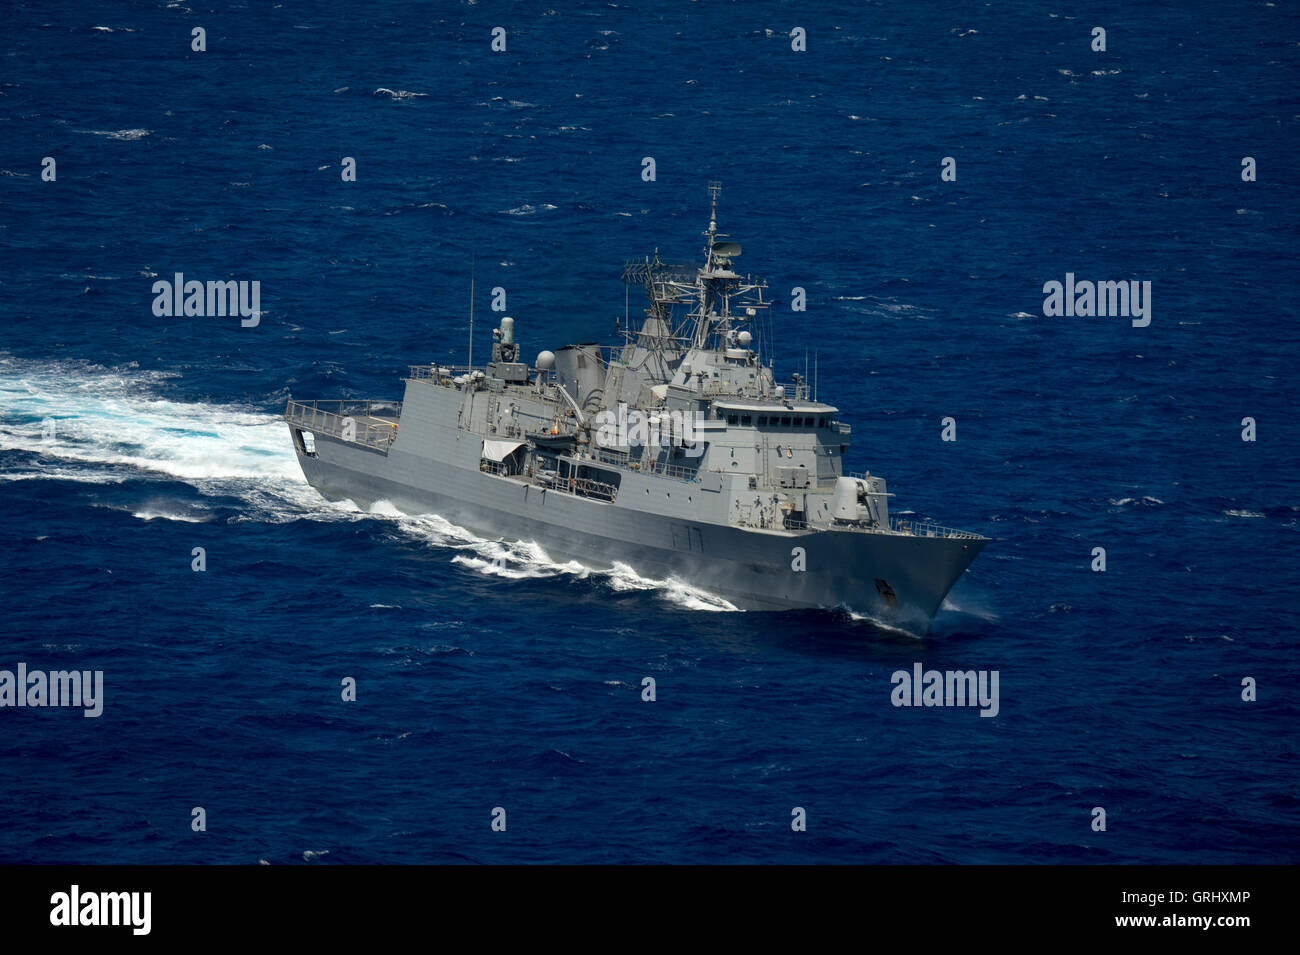 Royal New Zealand Navy ship HMNZS Te Kaha steams in close formation during Rim of the Pacific exercises July 28, - Stock Image